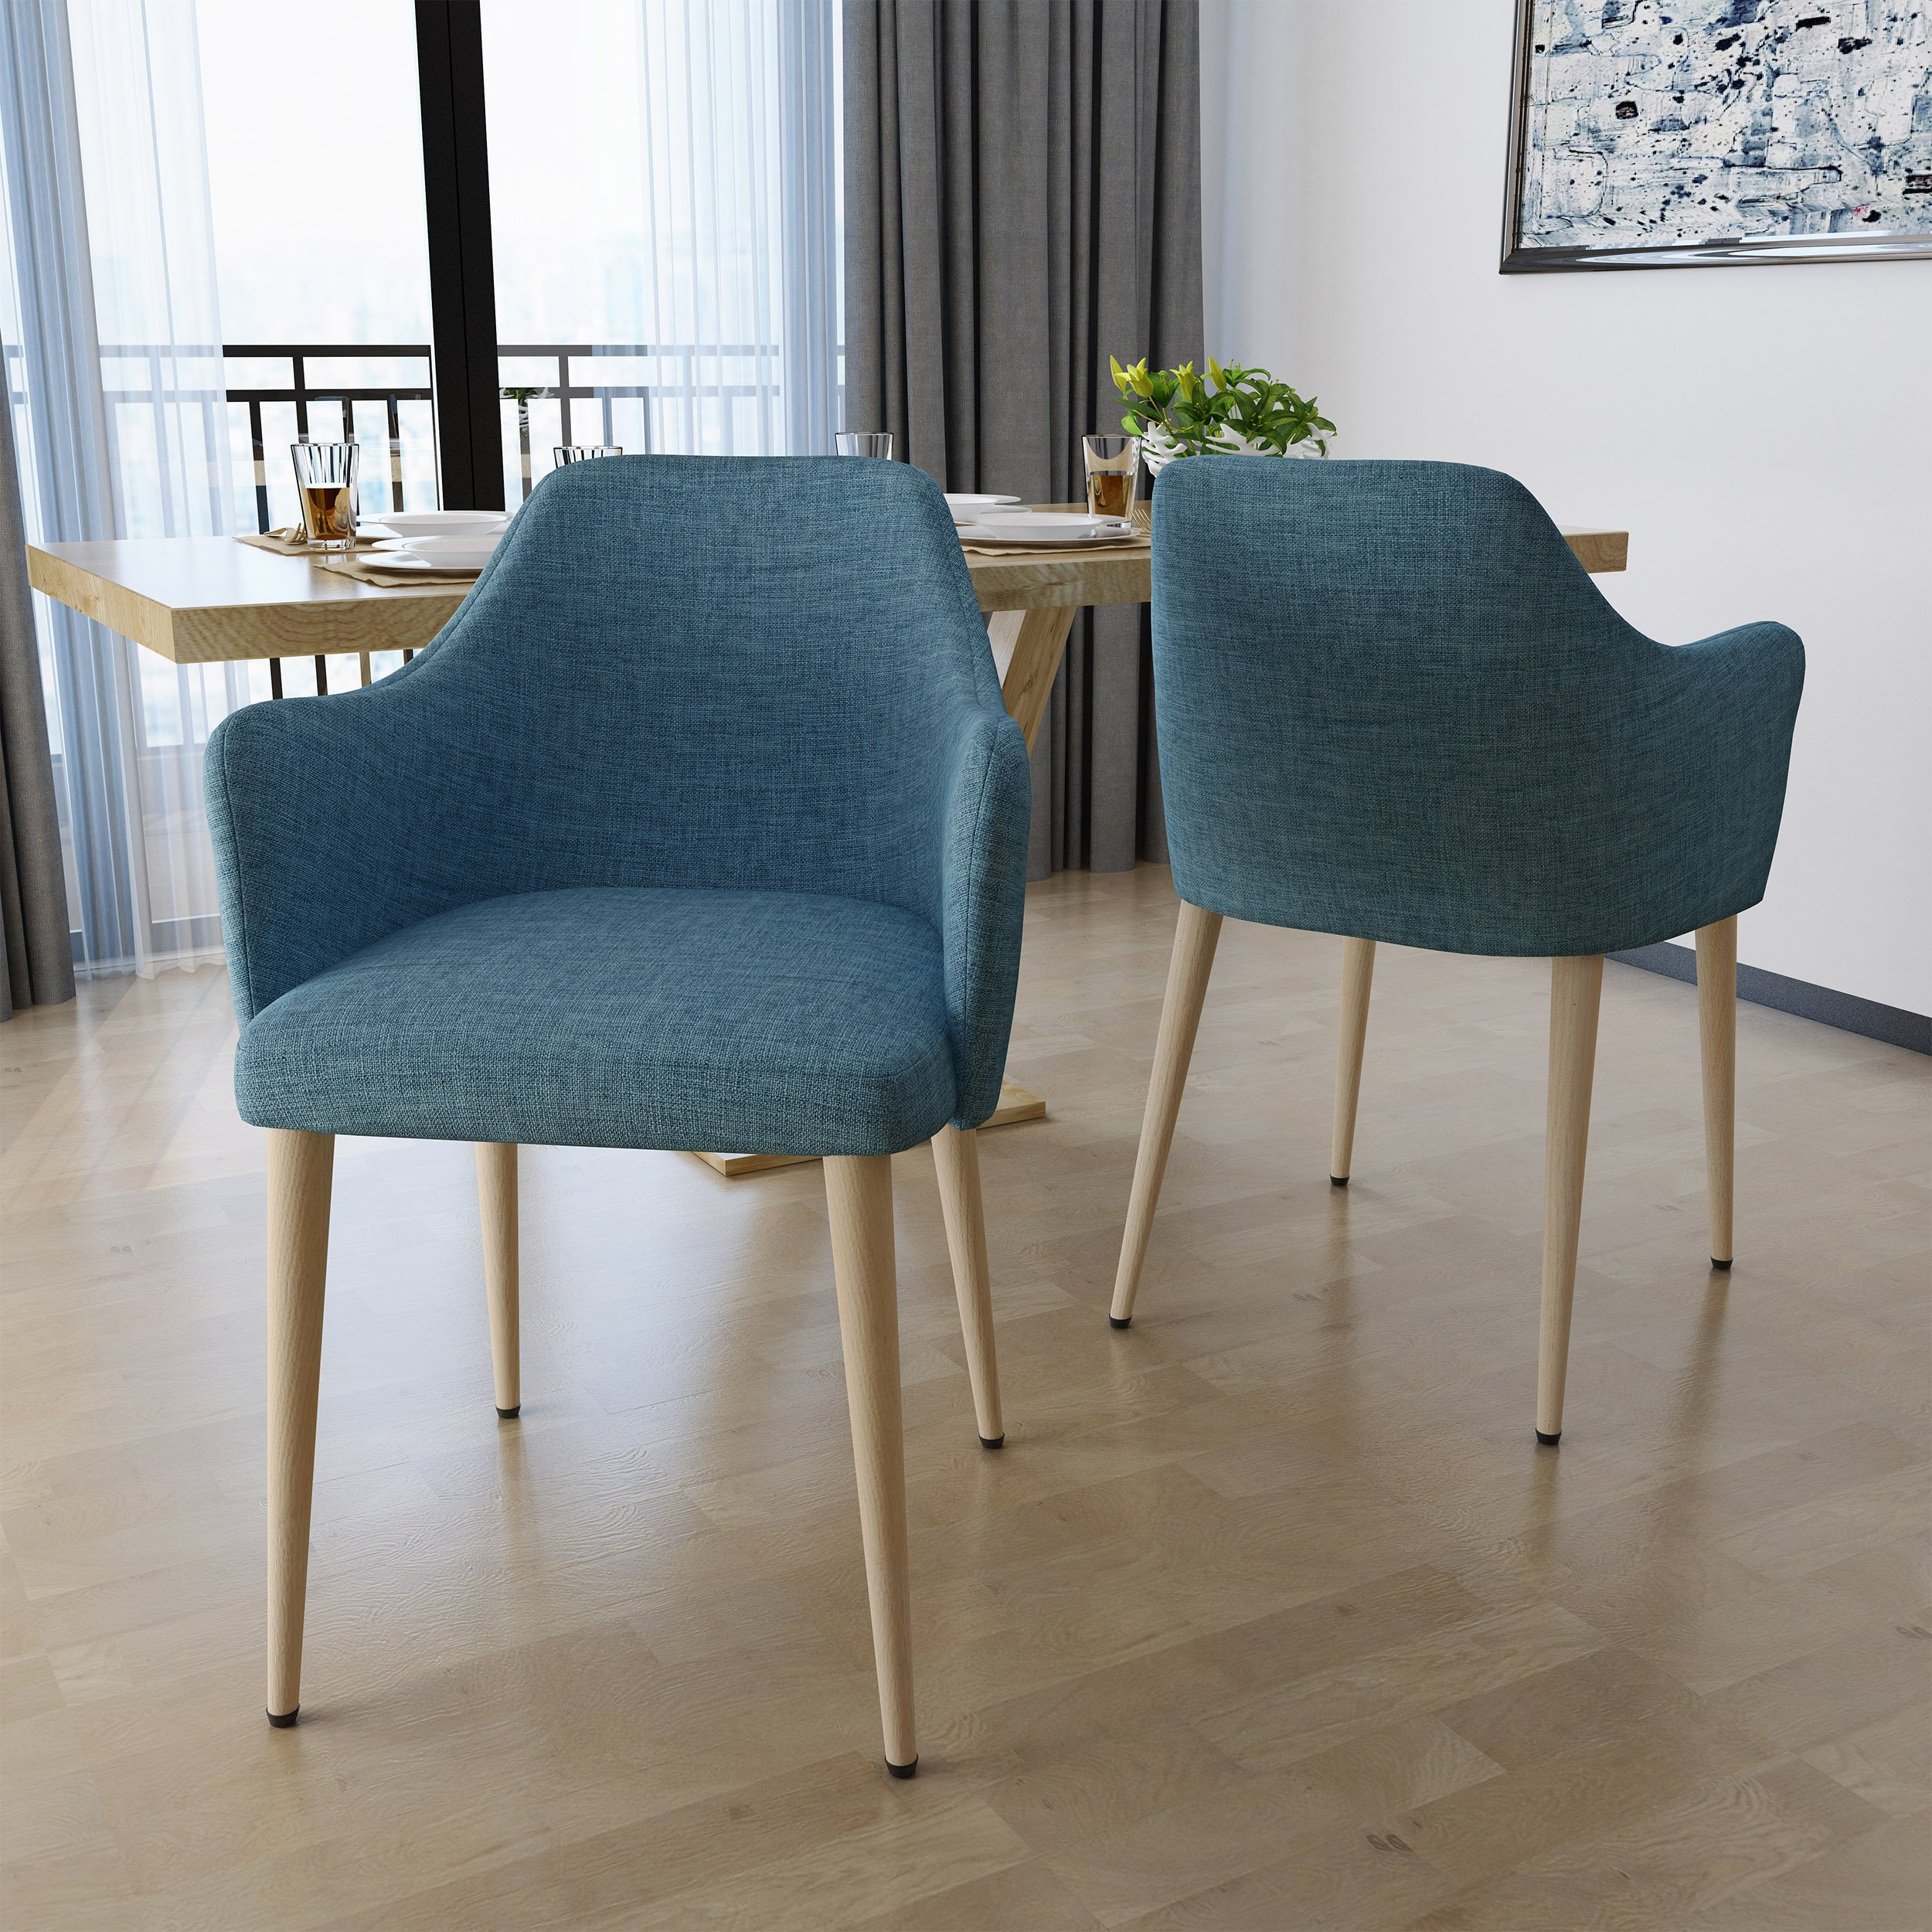 Nadya Mid Century Muted Blue Fabric Dining Chairs with Light Walnut Wood Finished Legs (Set of 2) by Great Deal Furniture